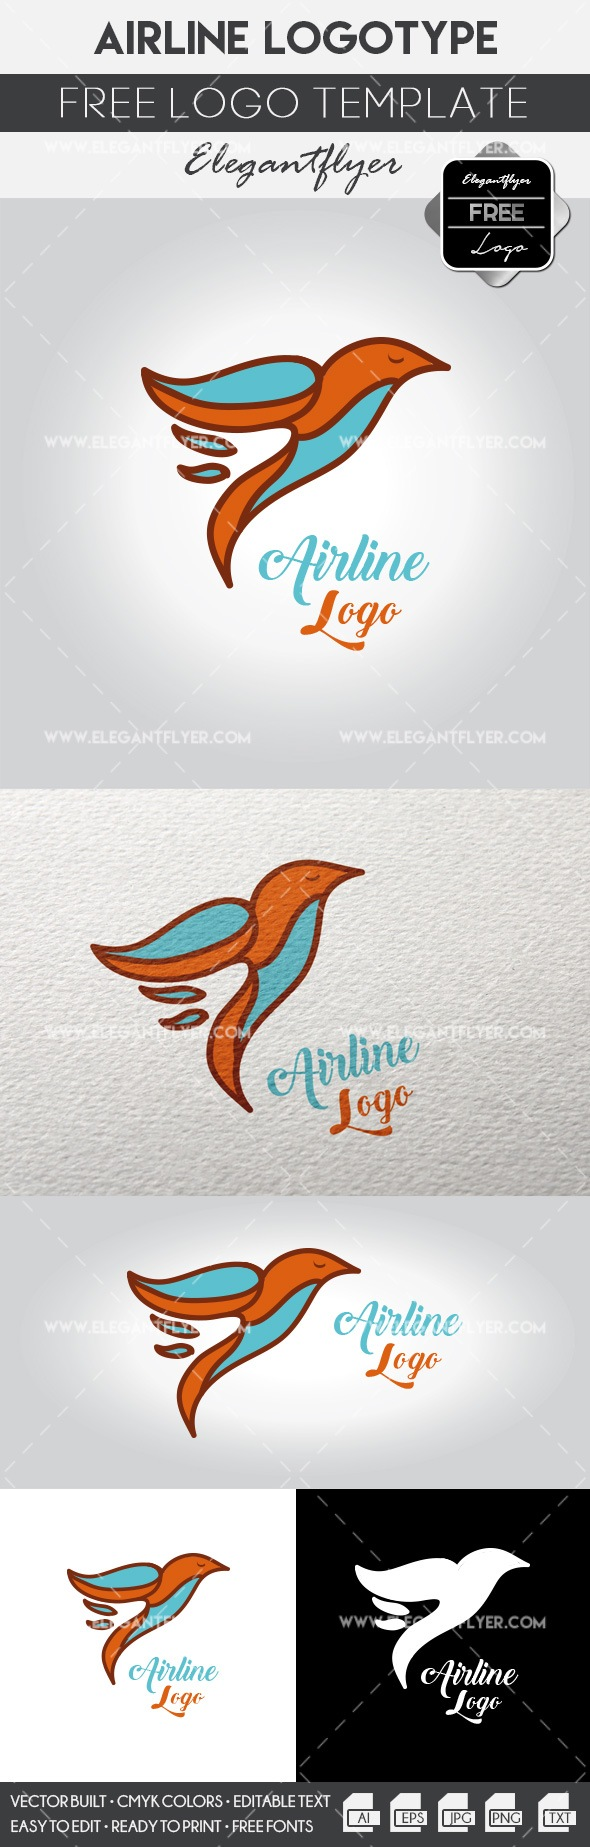 Airplane – Free Logo Template